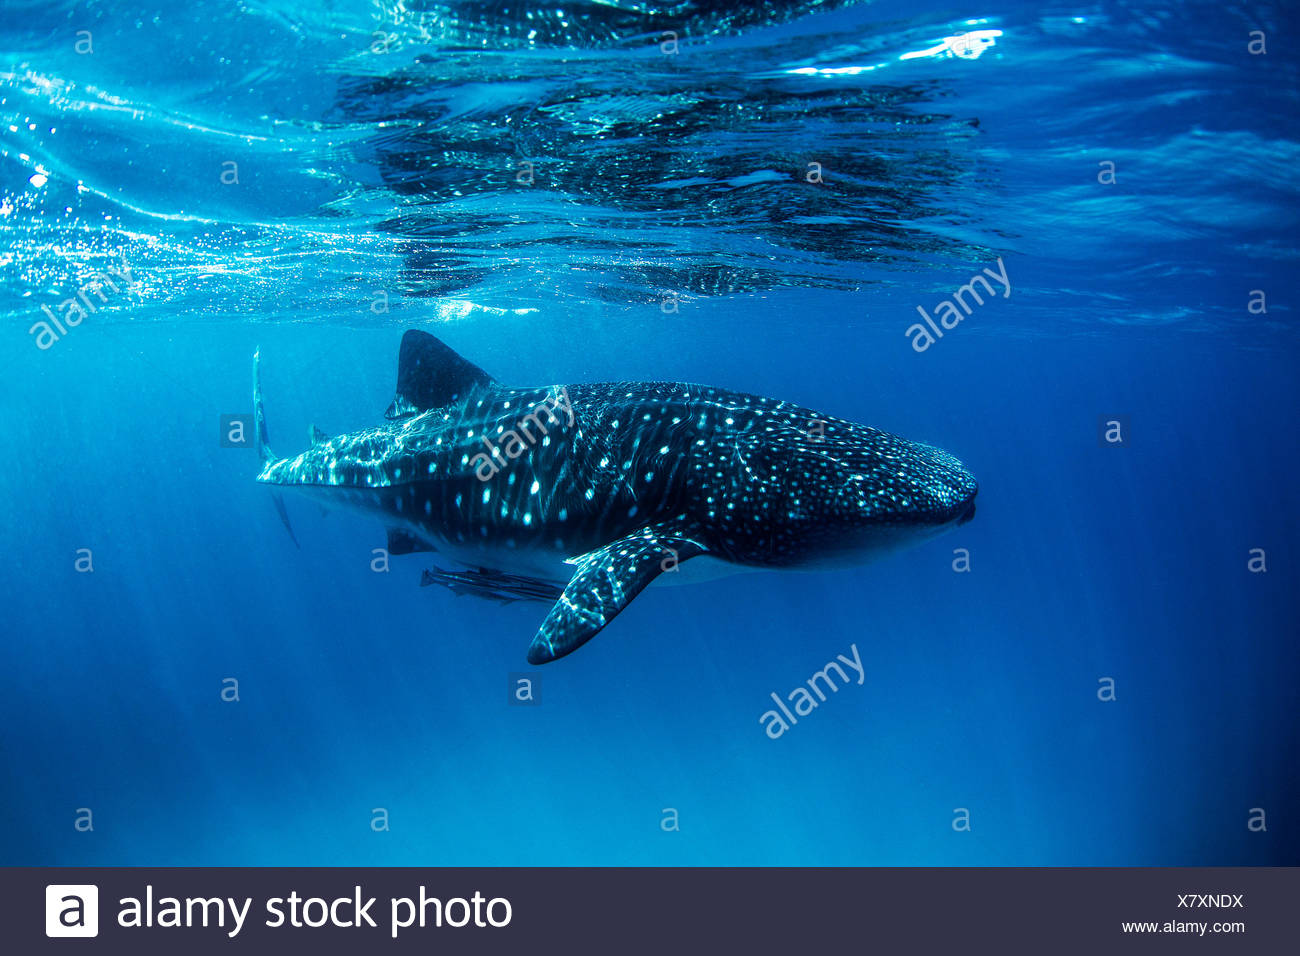 Whale shark with remoras swimming in ocean Stock Photo